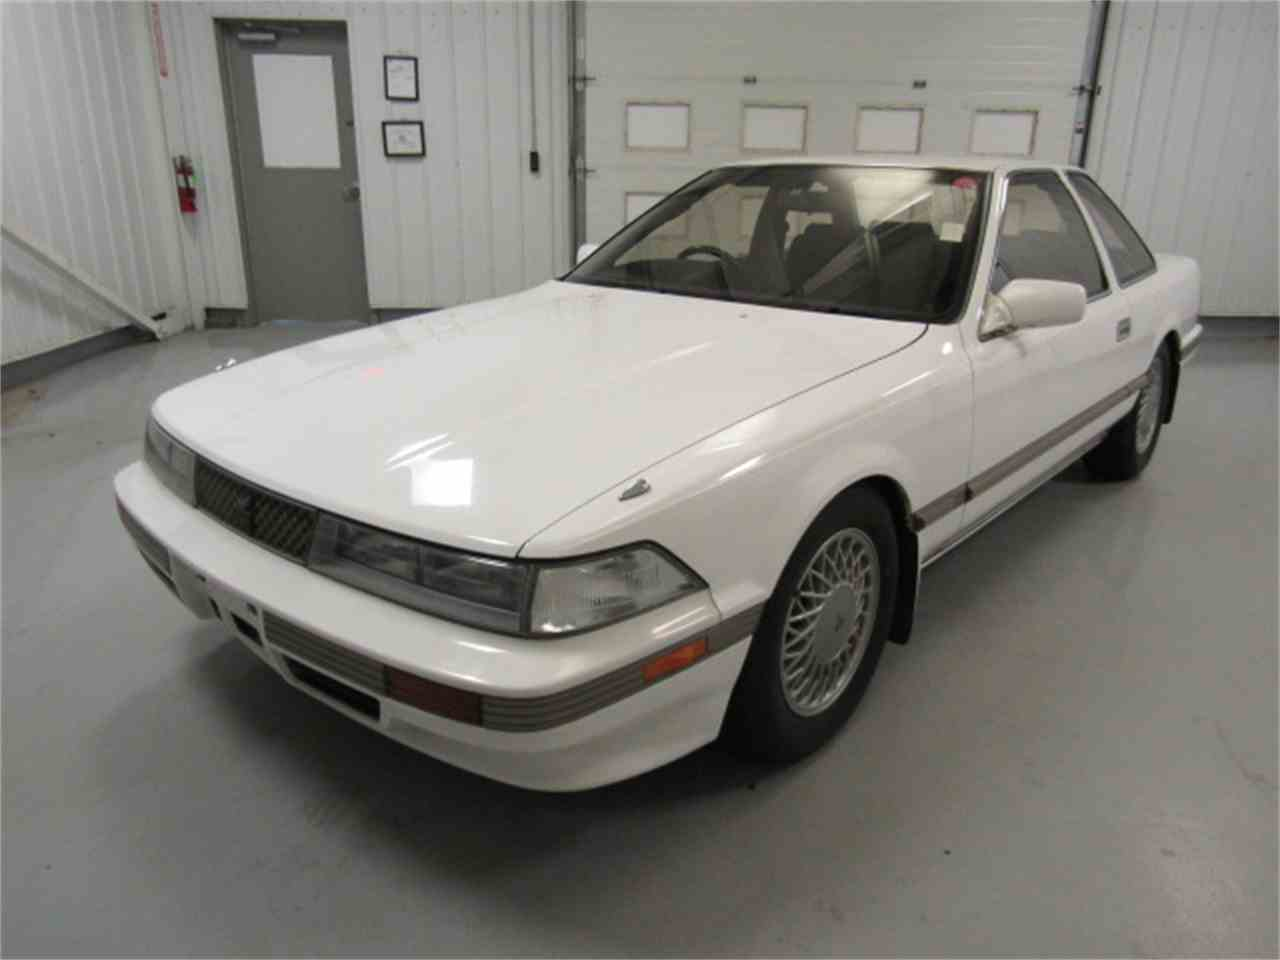 Large Picture of '87 Soarer - $7,999.00 Offered by Duncan Imports & Classic Cars - JLB2